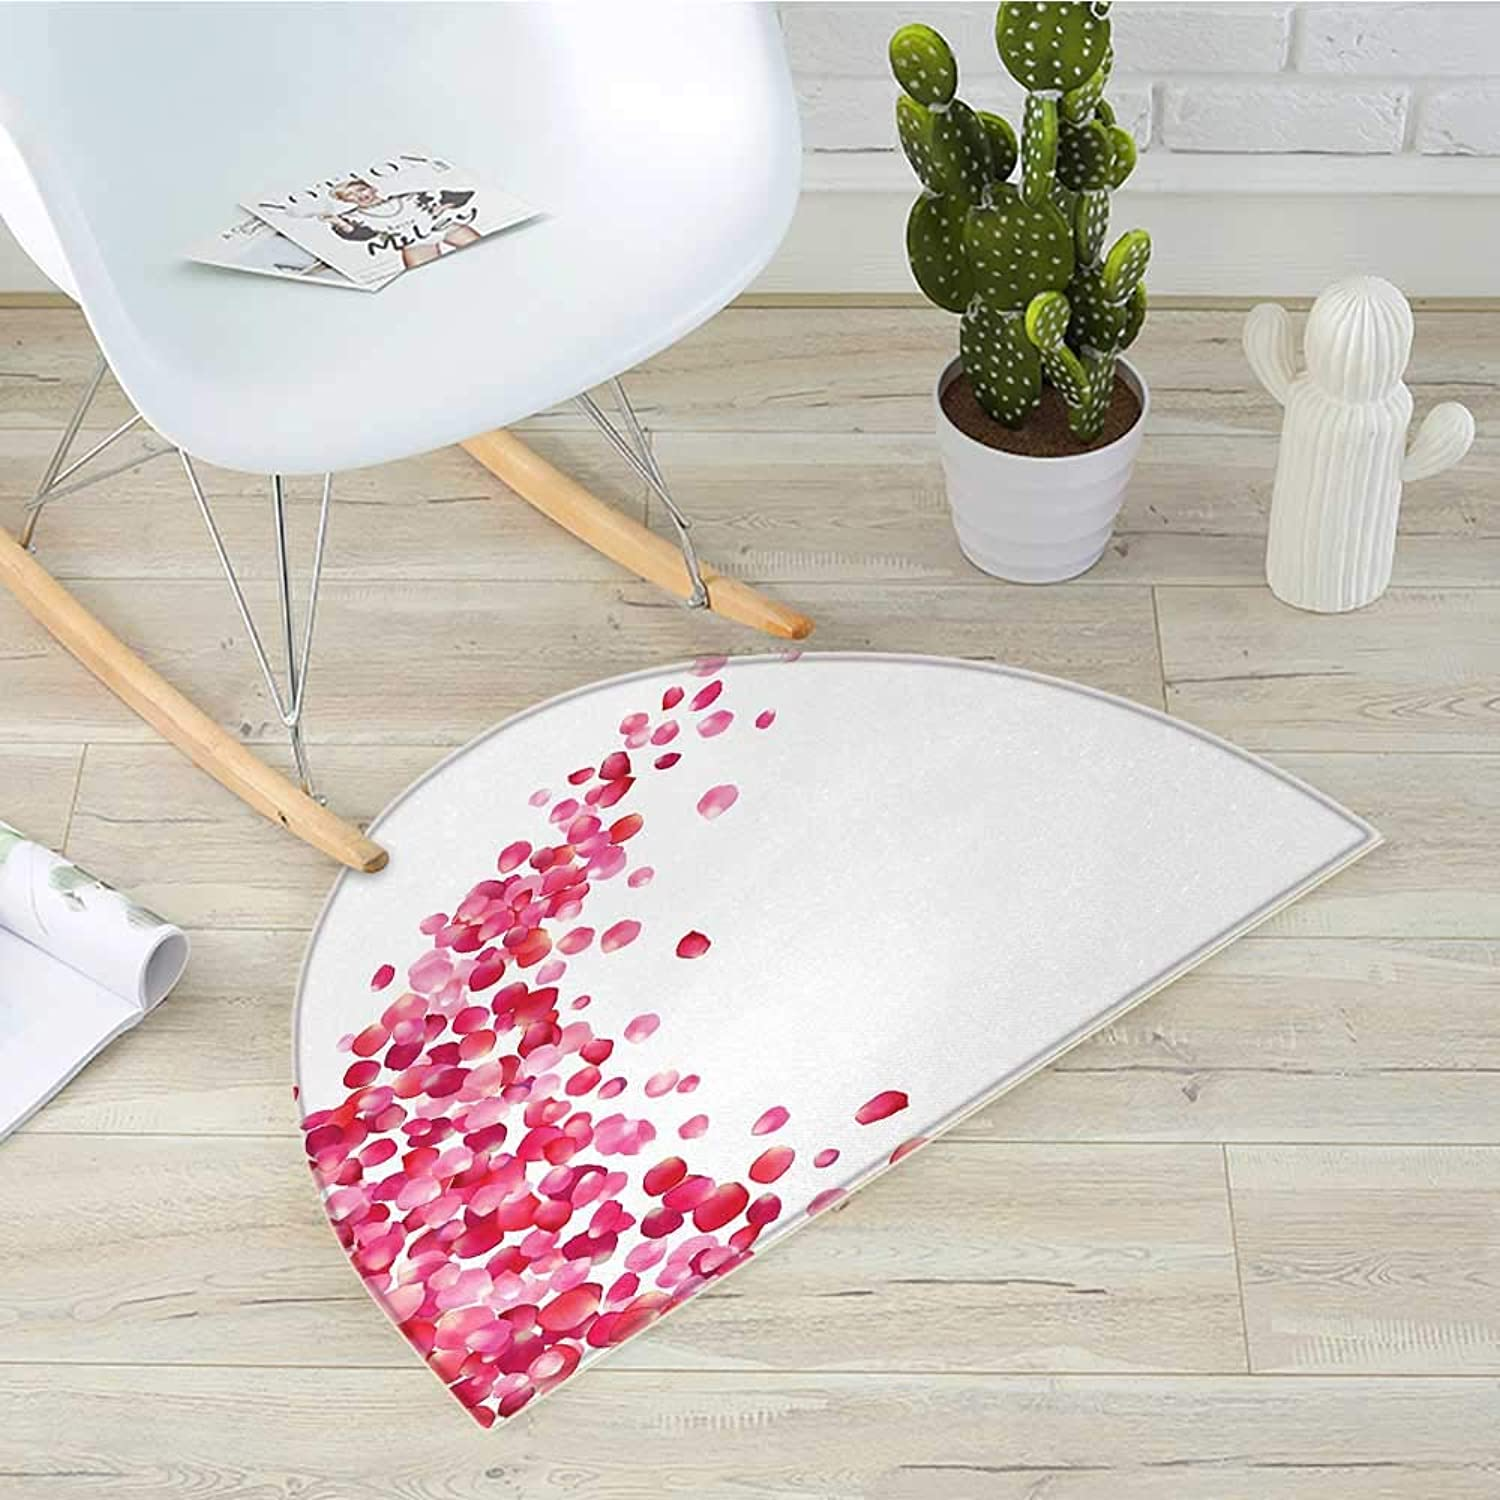 Pink and White Semicircle Doormat White Background with Vibrant pink Petals Vortex with Realistic Look Halfmoon doormats H 39.3  xD 59  Magenta White